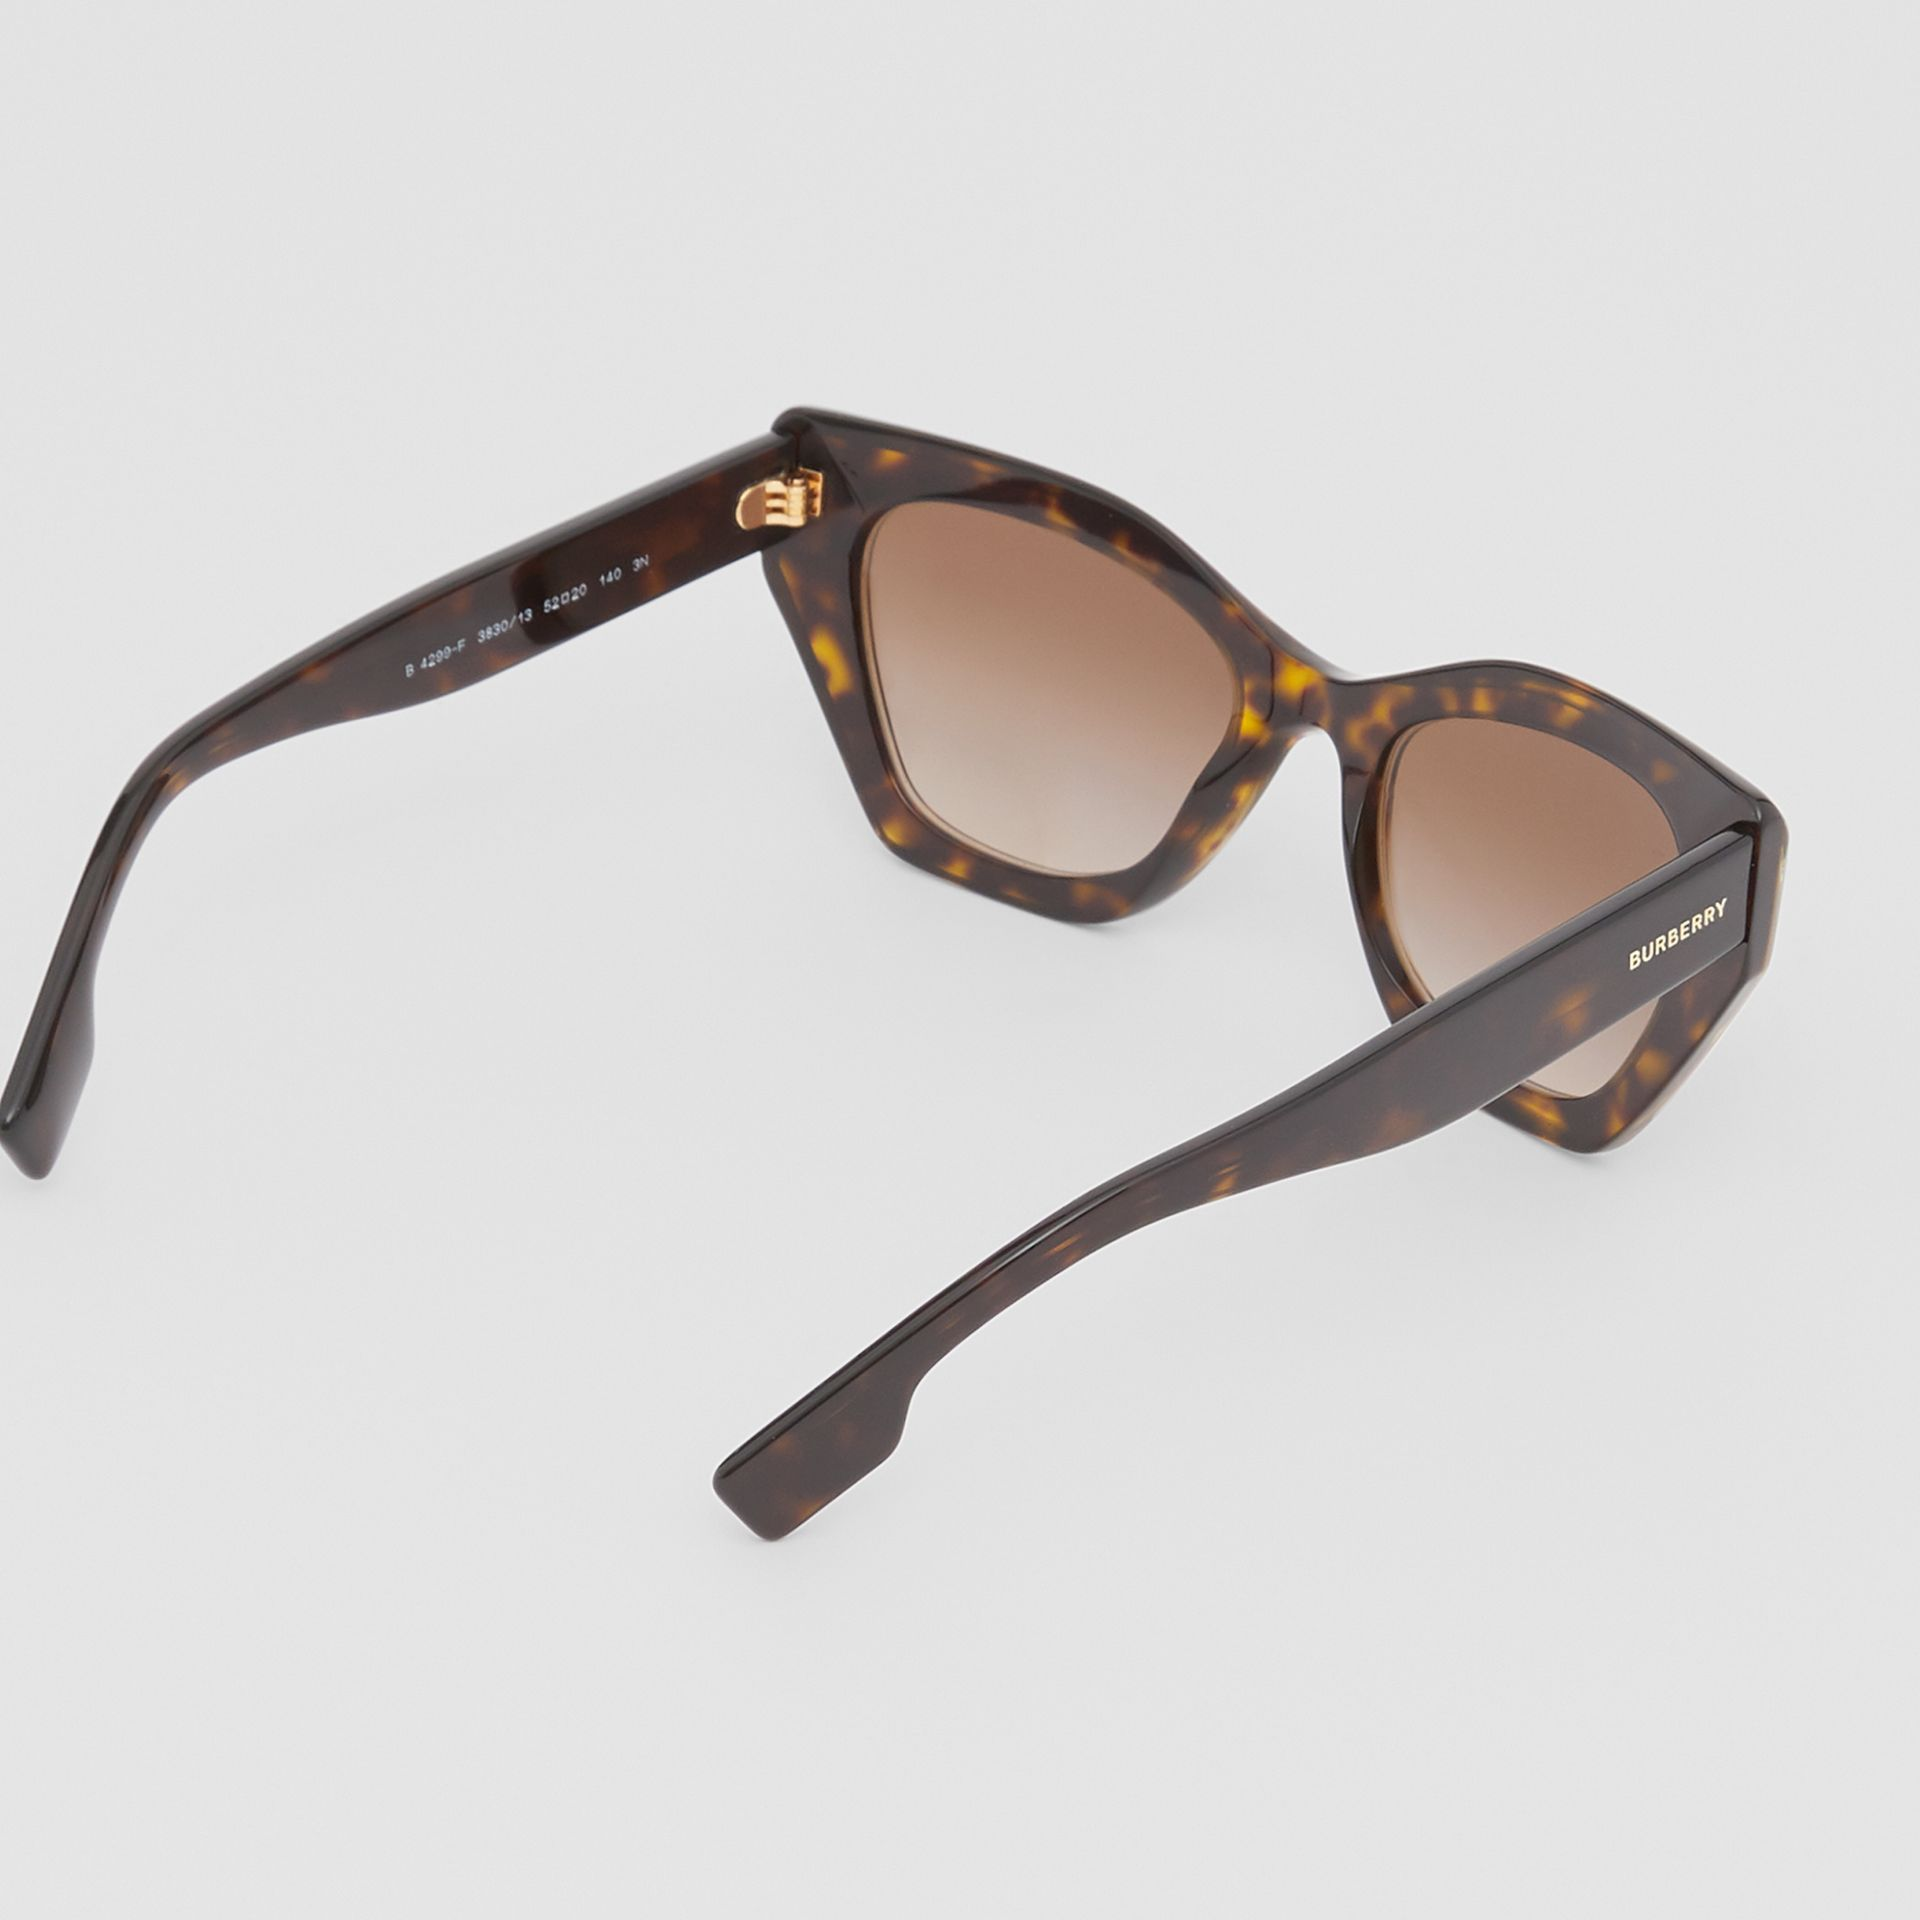 Butterfly Frame Sunglasses in Tortoiseshell - Women | Burberry - gallery image 3